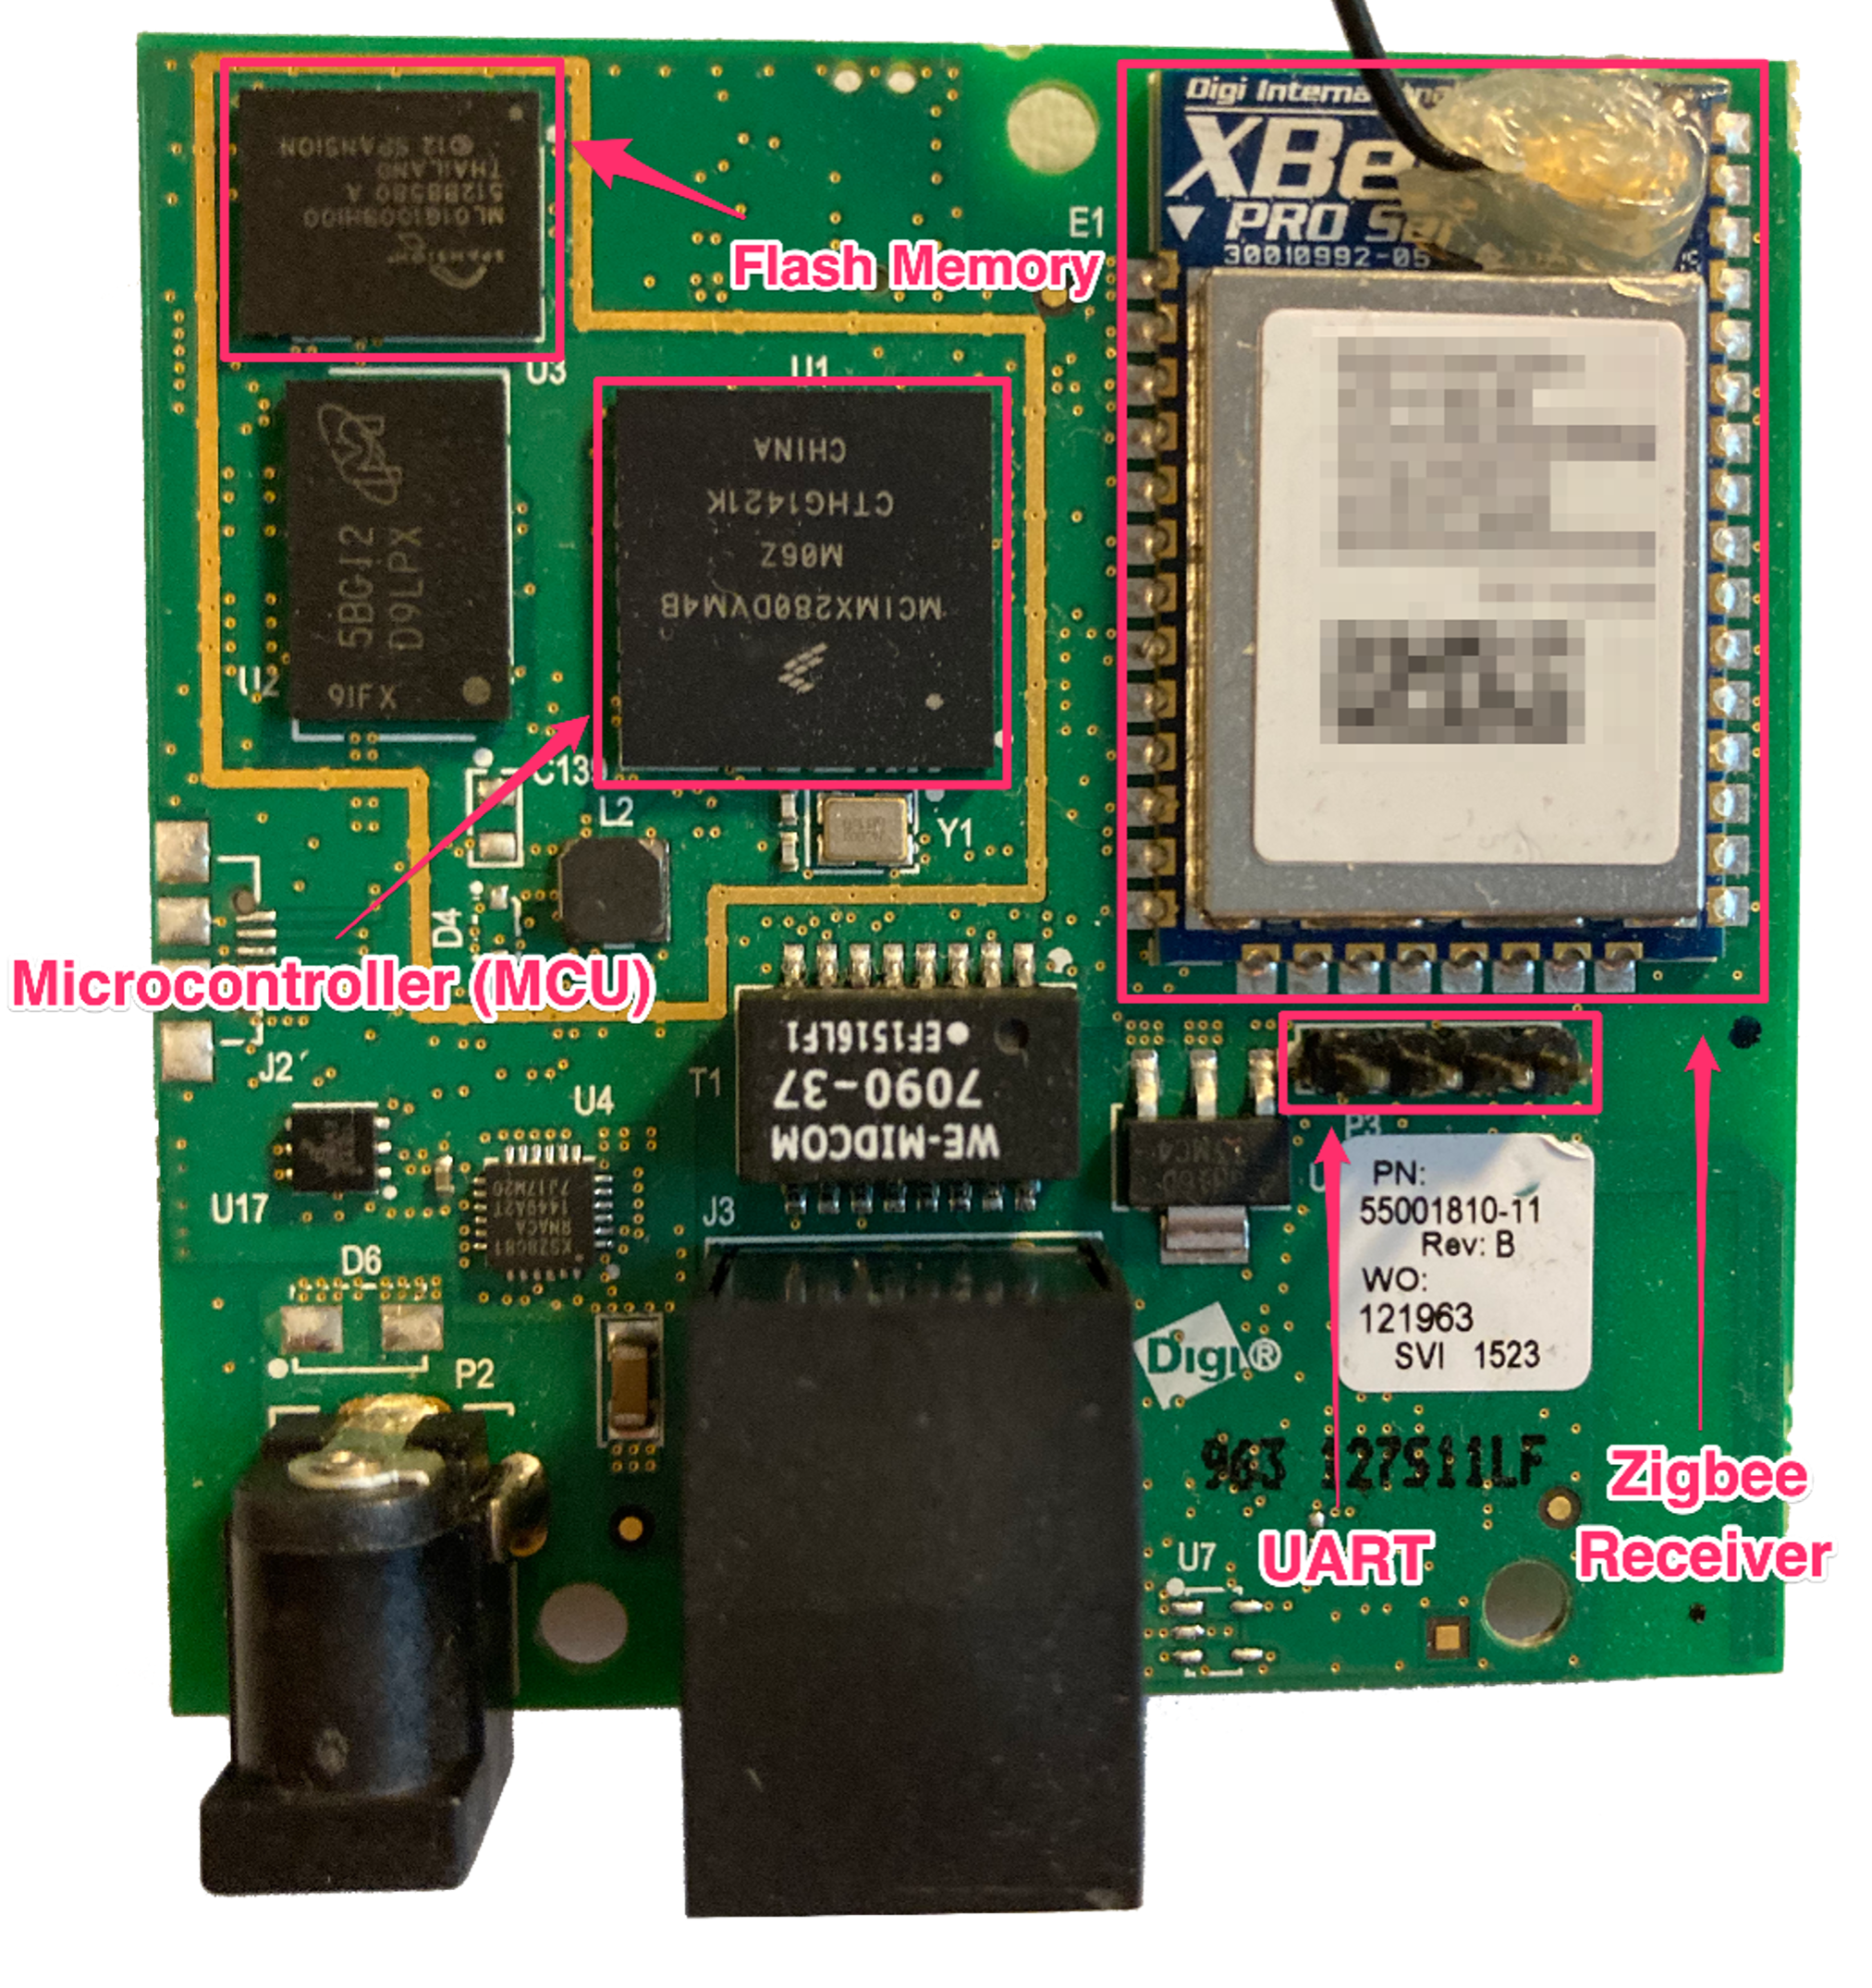 , Shining a Light on SolarCity: Practical Exploitation of the X2e IoT Device (Part One)